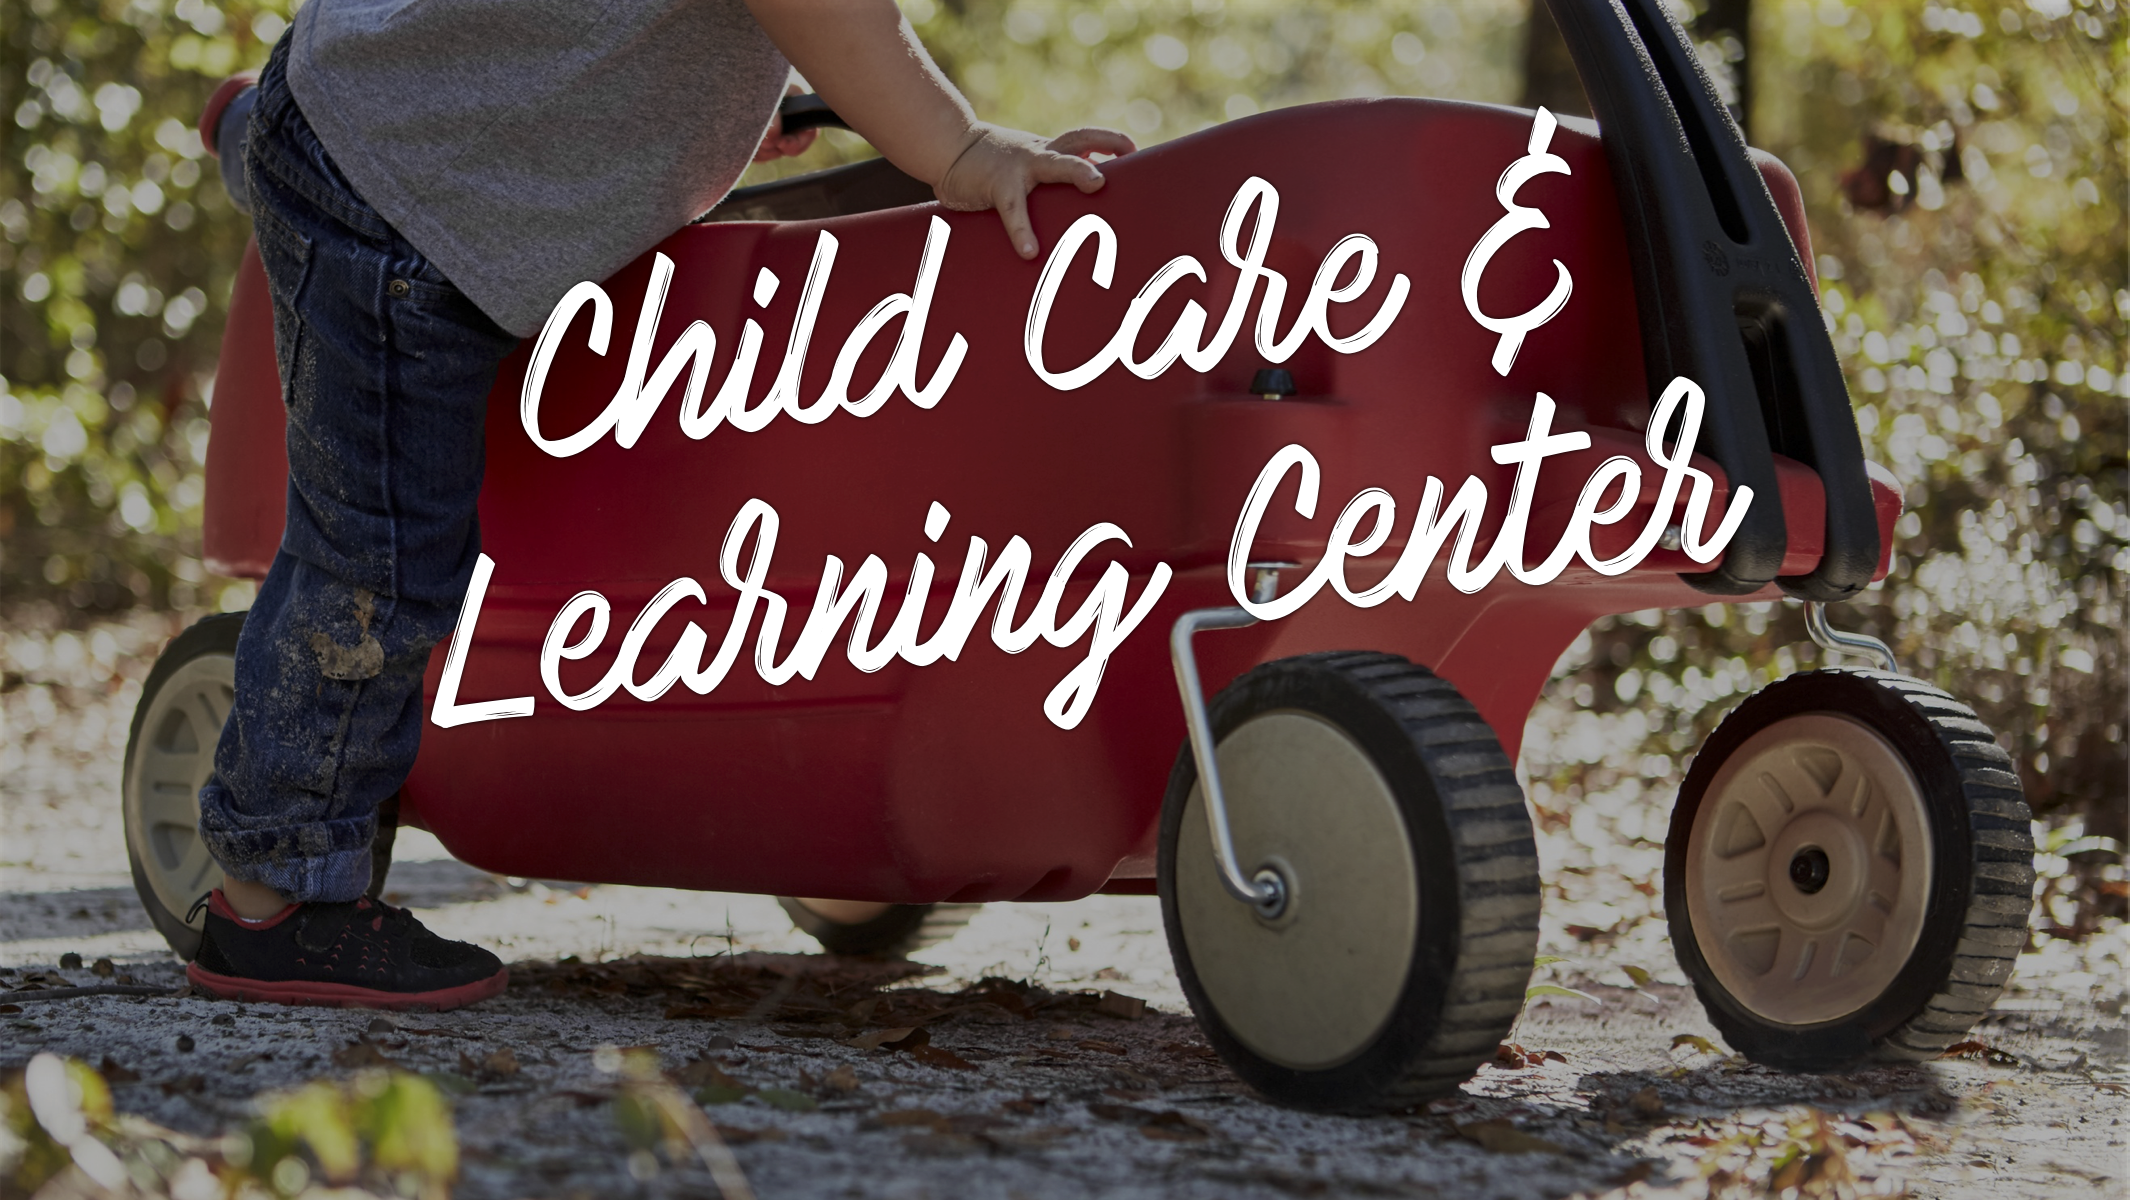 Child Caer & Learning Center 16:9.png